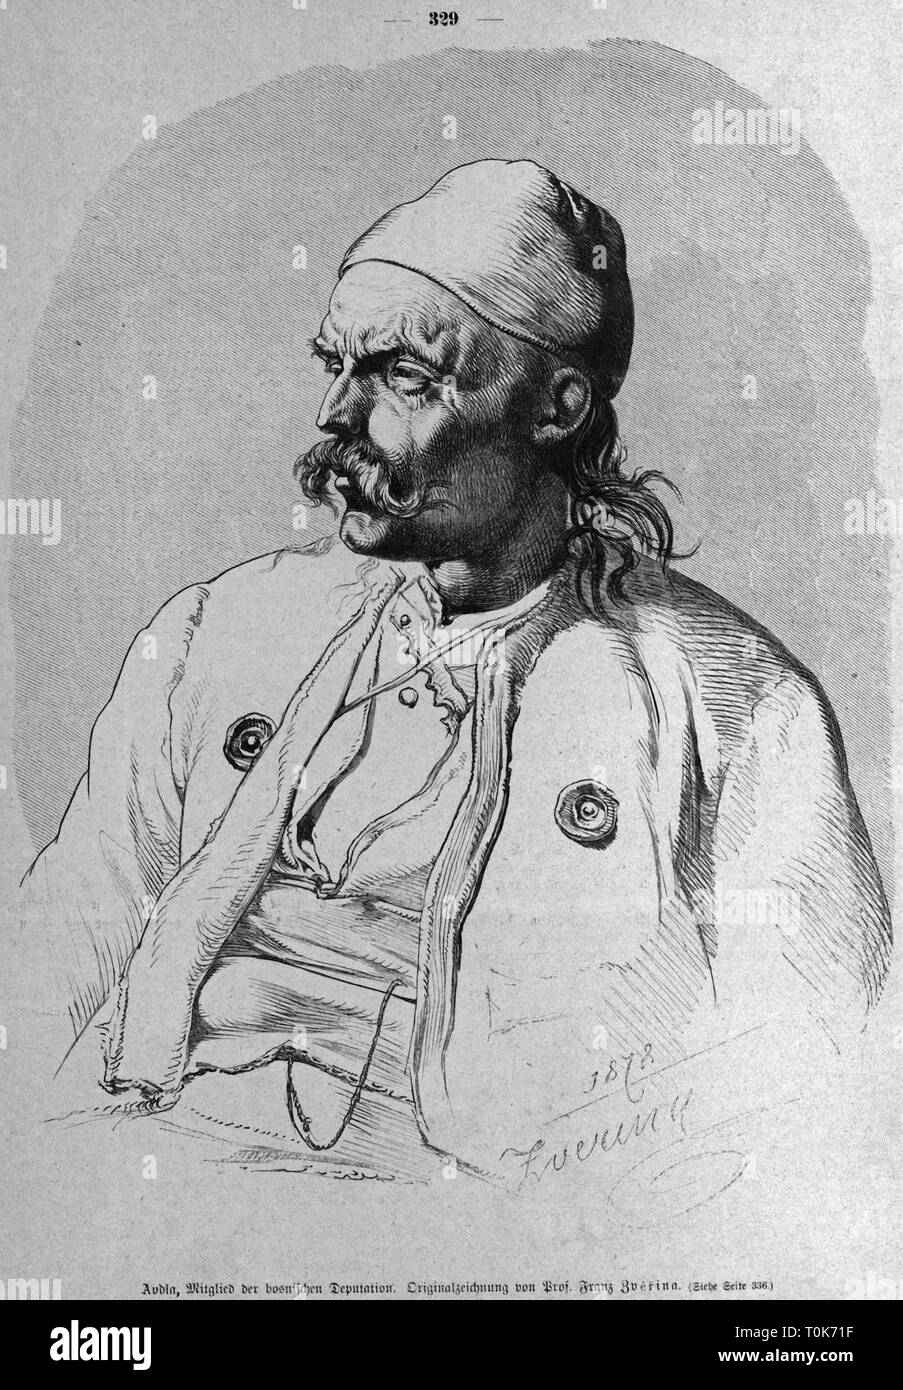 people, ethnology, men, Bosnia, portrait of Avdia, member of the Bosnian delegation (to the Congress of Berlin ?), wood engraving after drawing by Franz Zverina, 1878, Additional-Rights-Clearance-Info-Not-Available - Stock Image